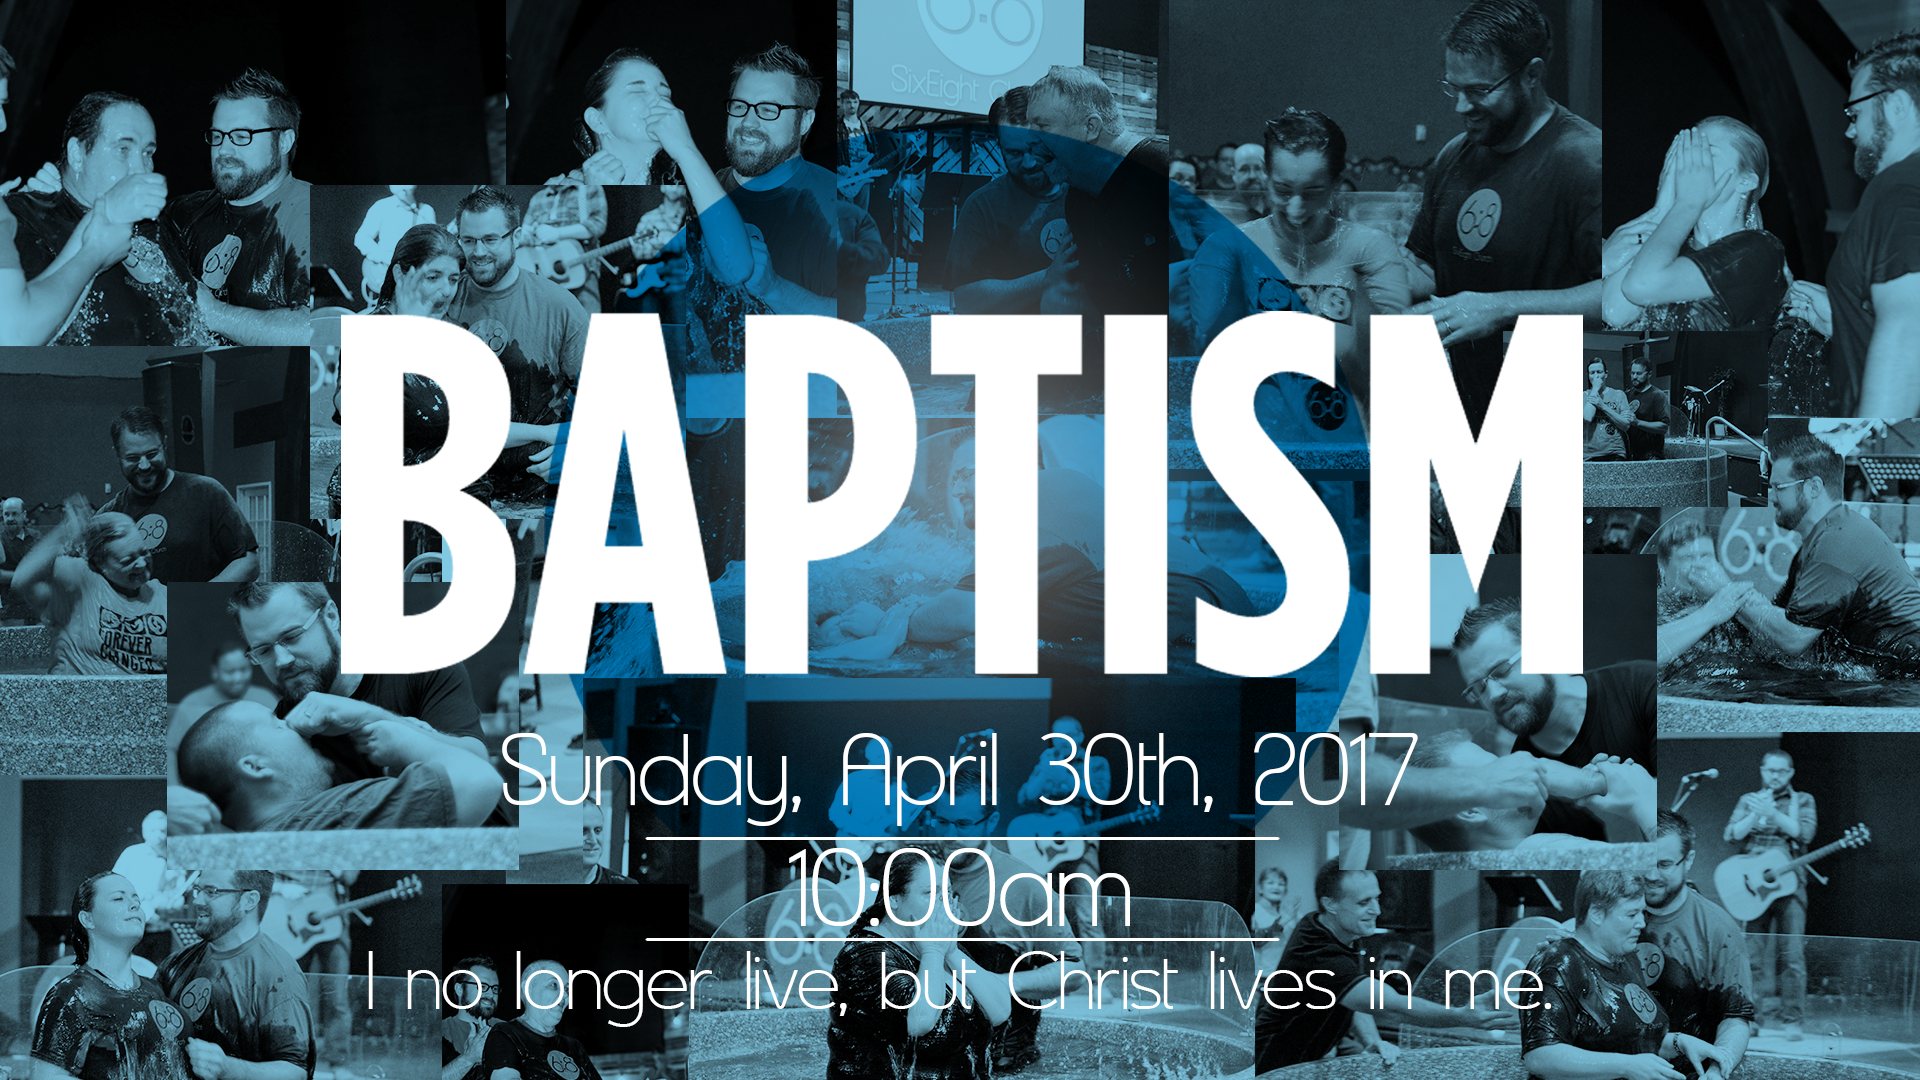 Baptism Sunday, April 30th, 2017